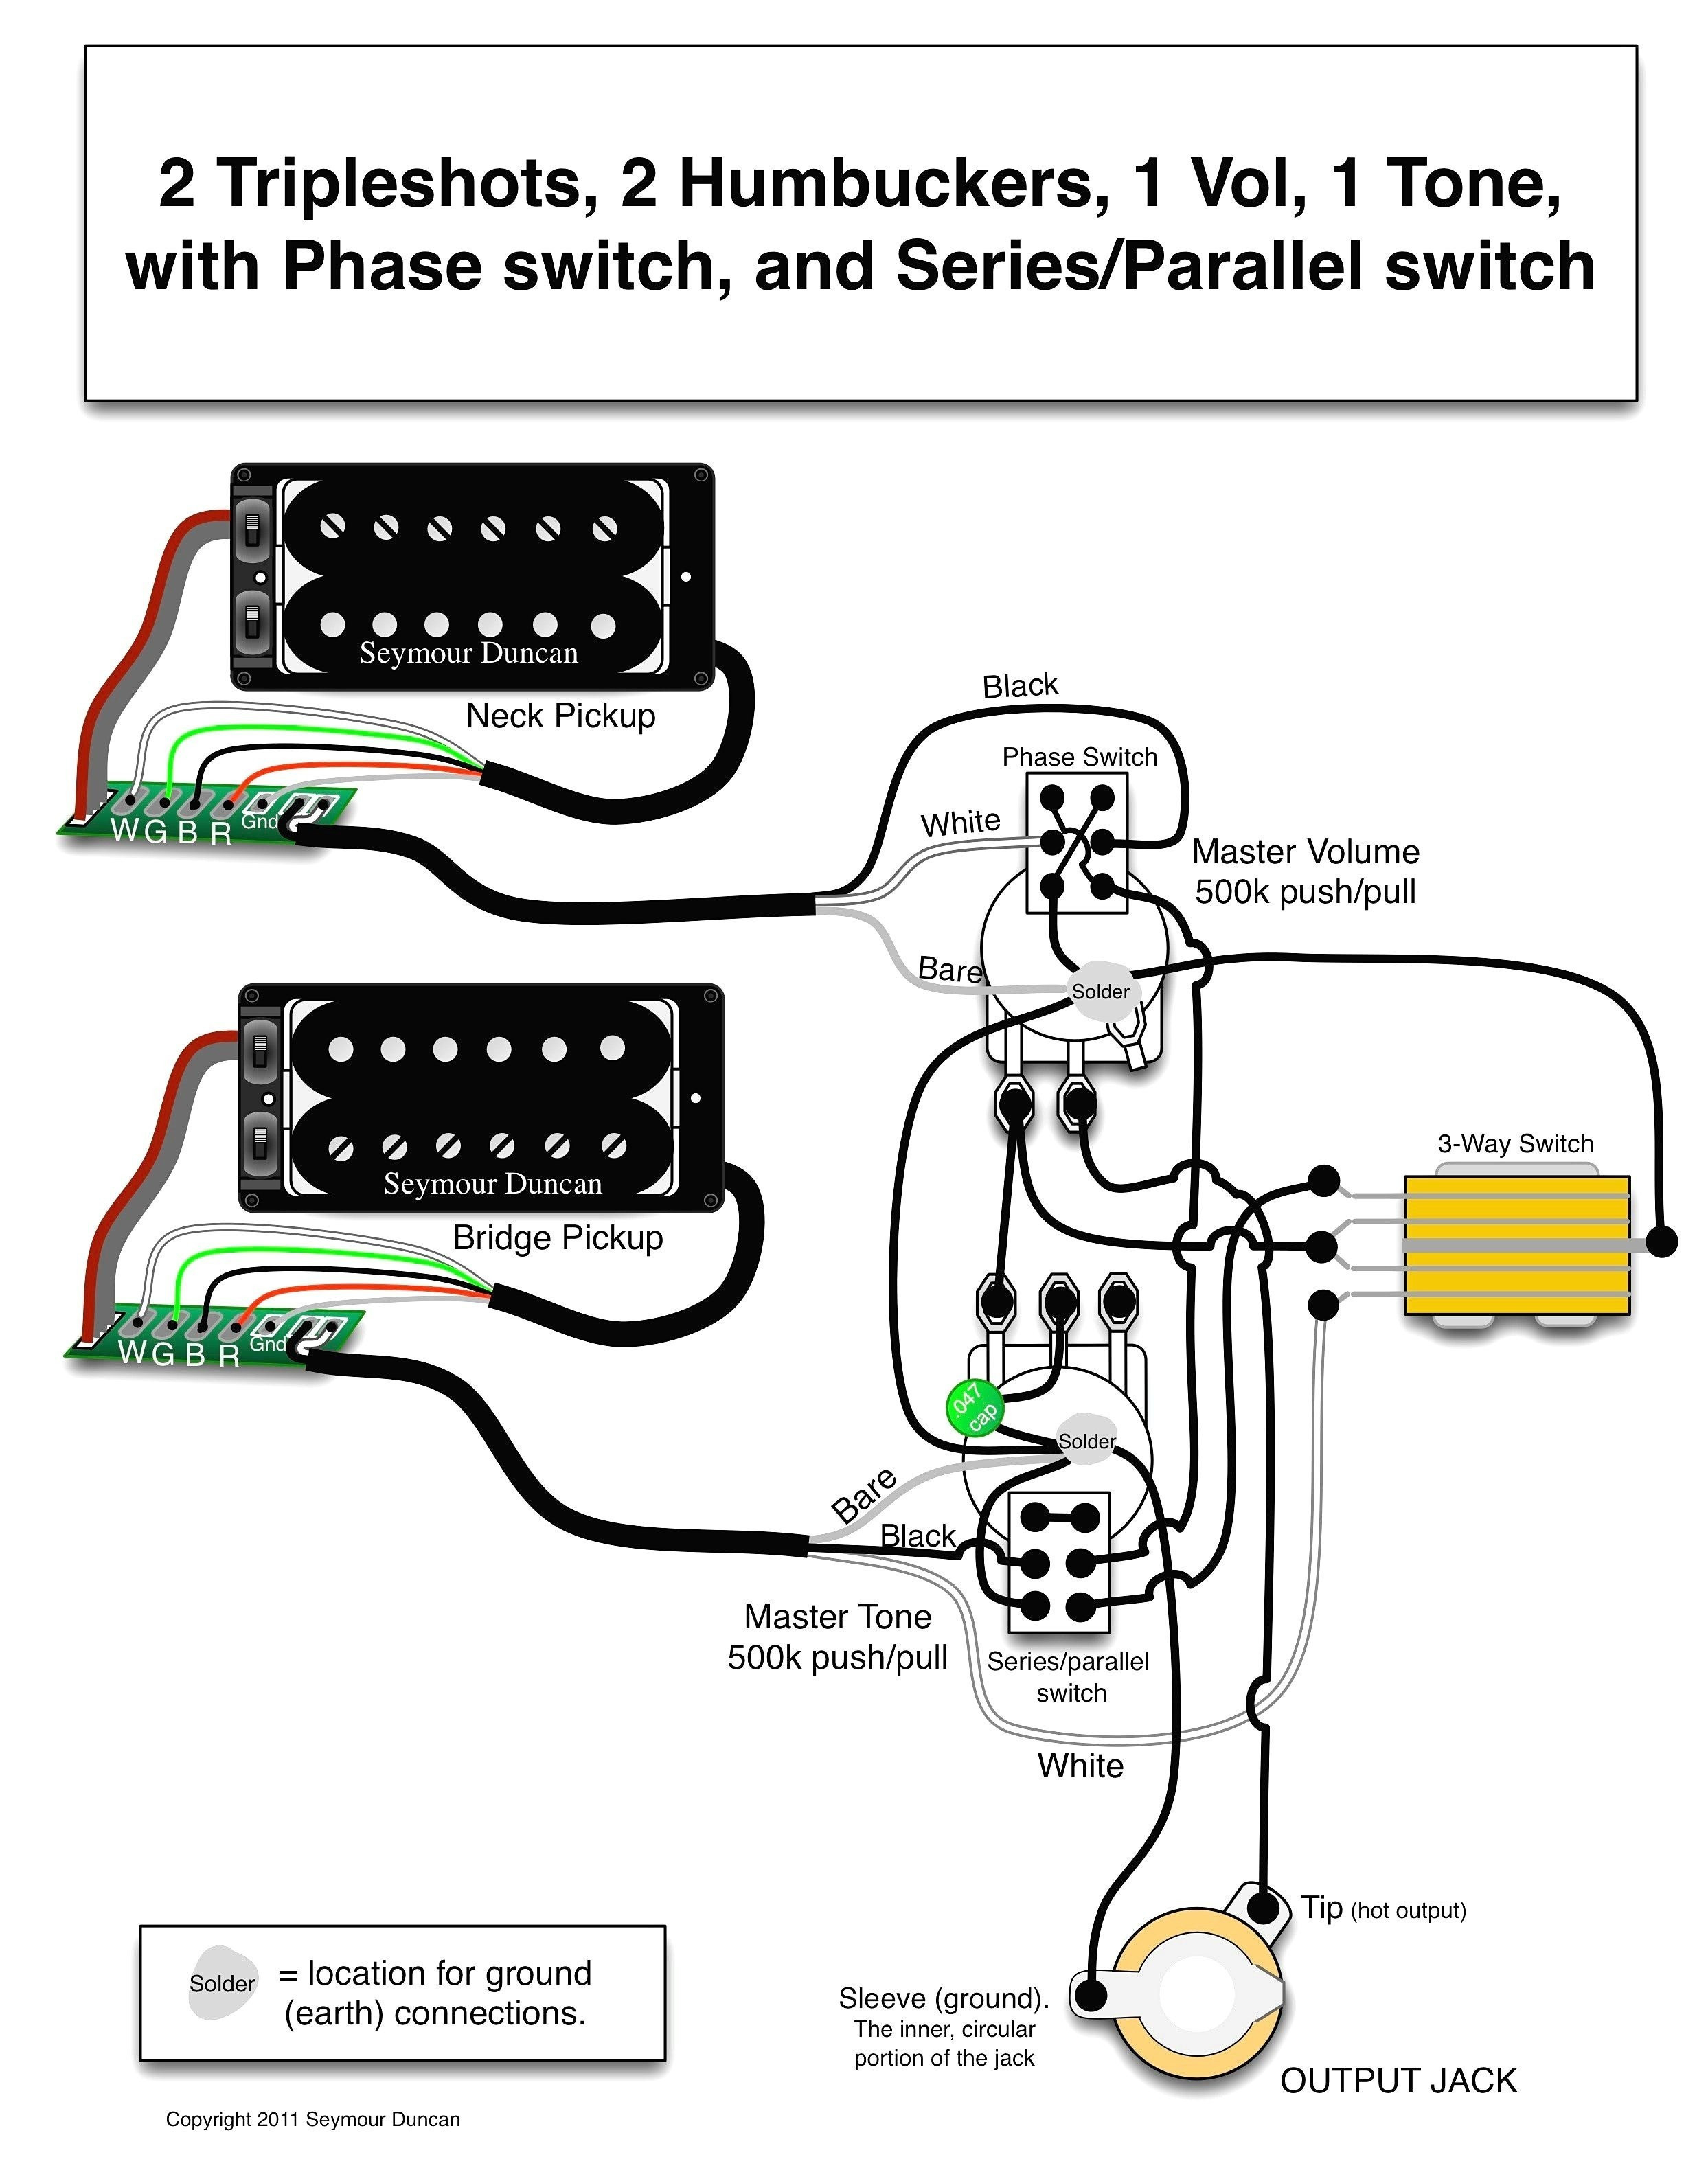 epiphone les paul special wiring diagram Collection-Gibson Les Paul Special Wiring Diagram New Wiring Diagram Epiphone Les Paul Special Ii Refrence Les Paul 4-s